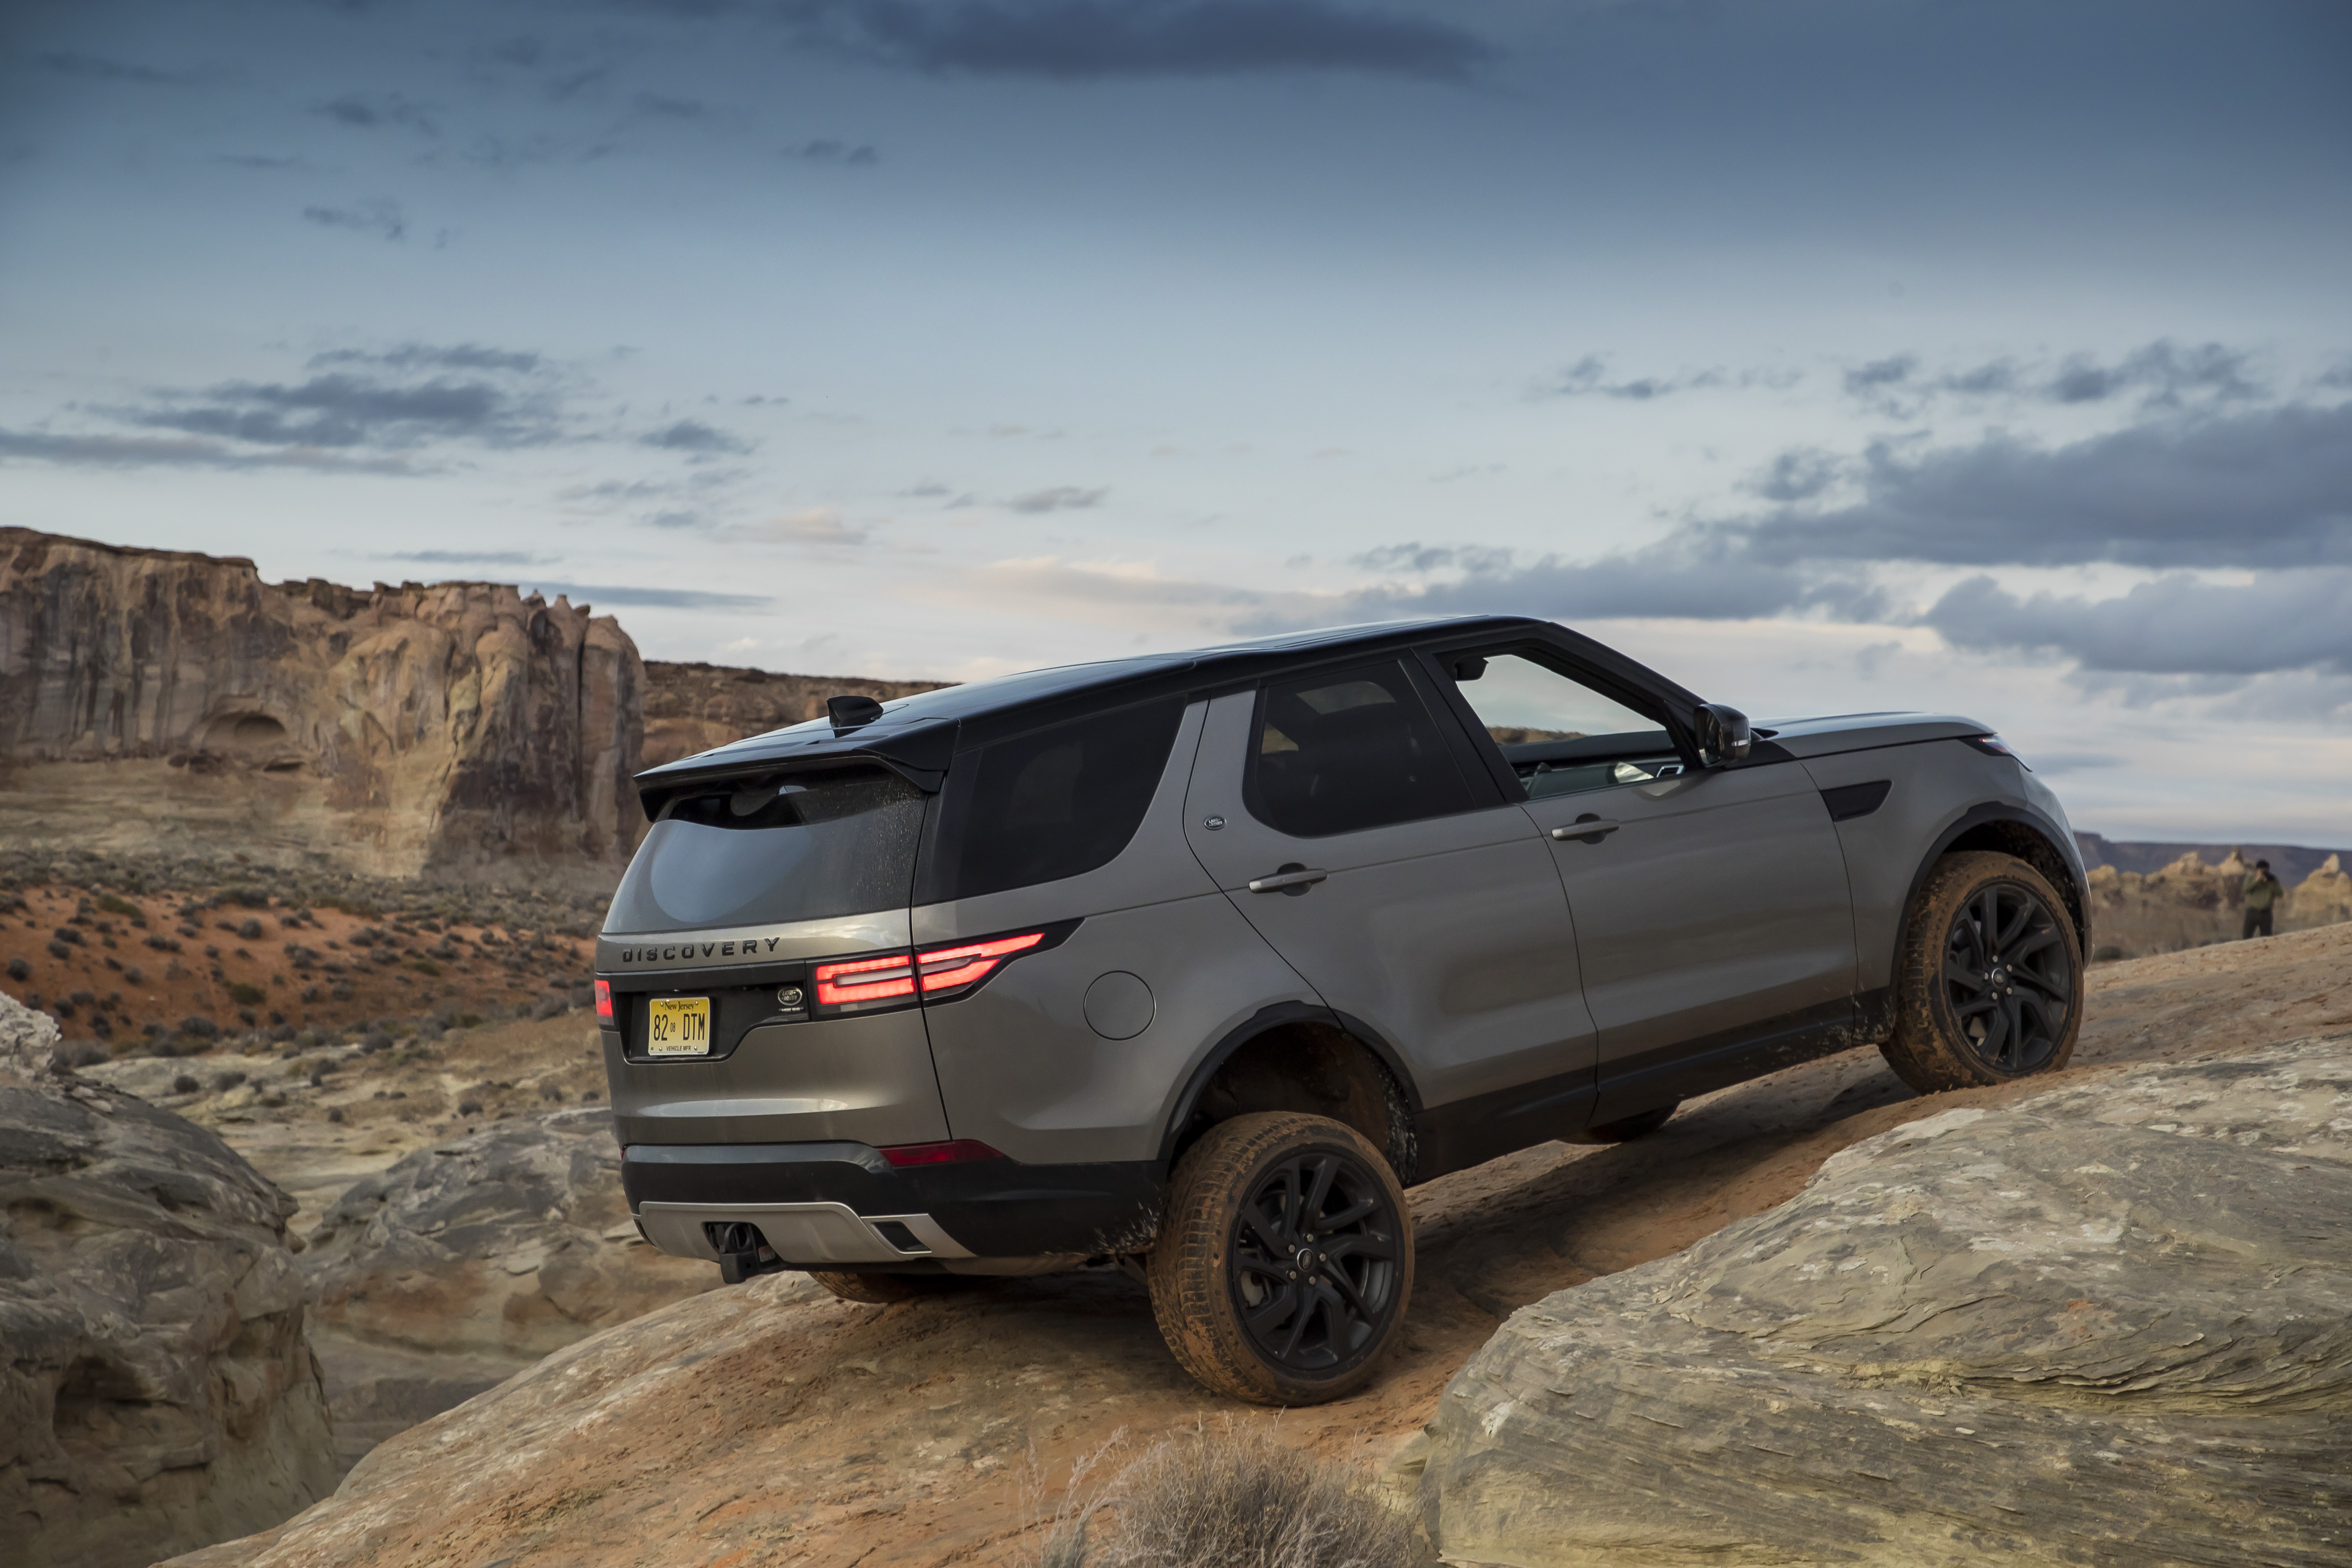 24-2017-land-rover-discovery-first-drive.jpg